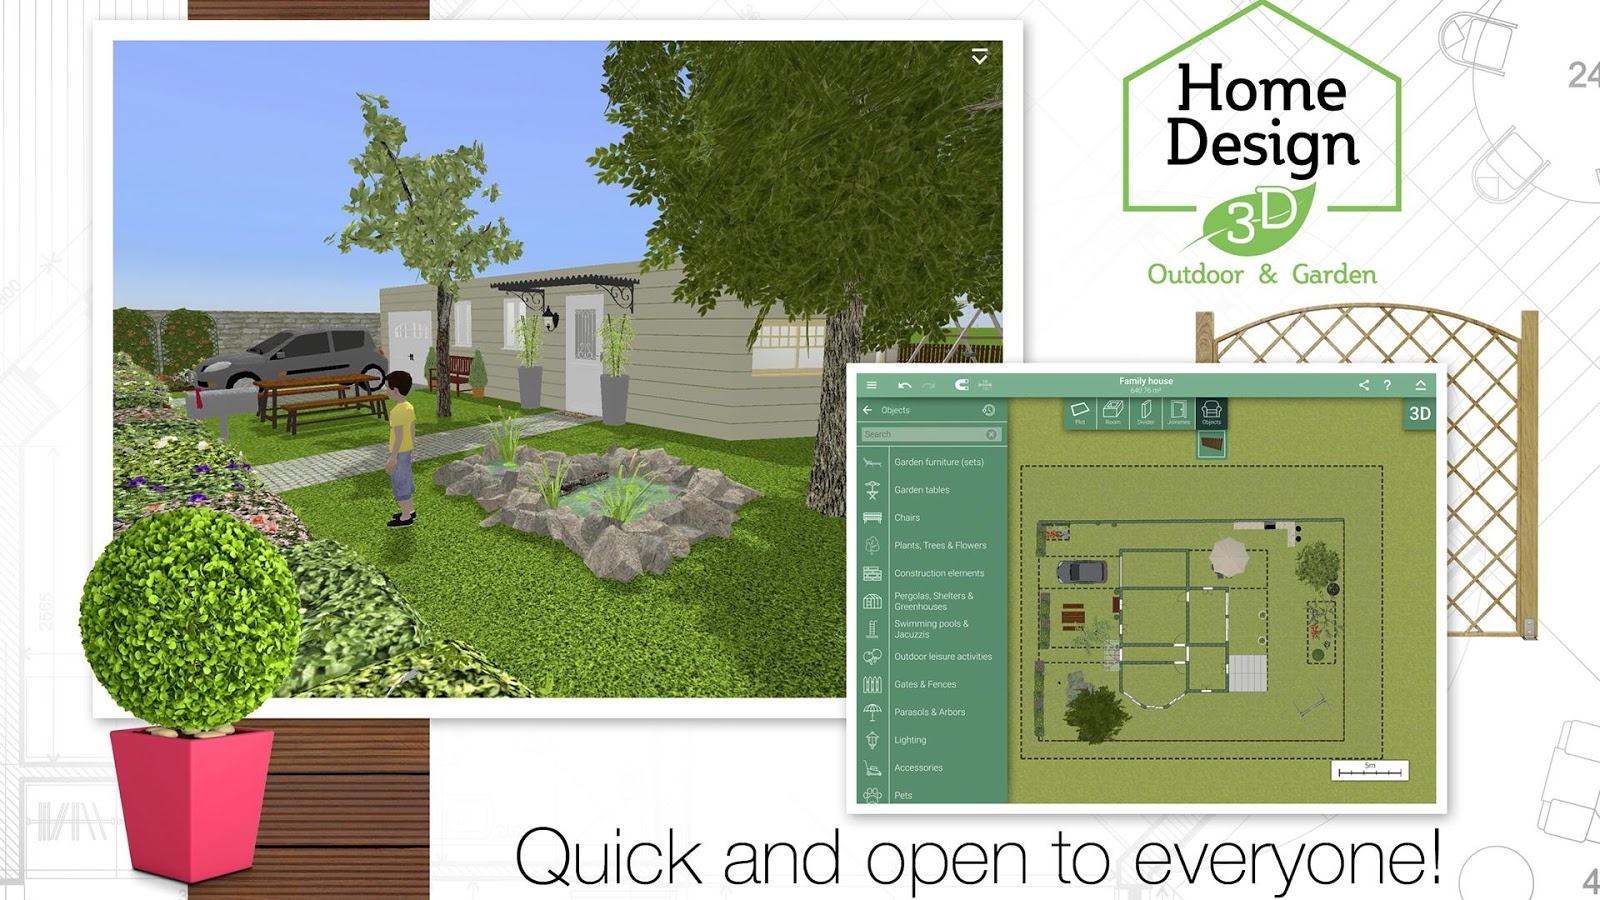 Home design 3d outdoor garden android apps on google play House designing software for pc